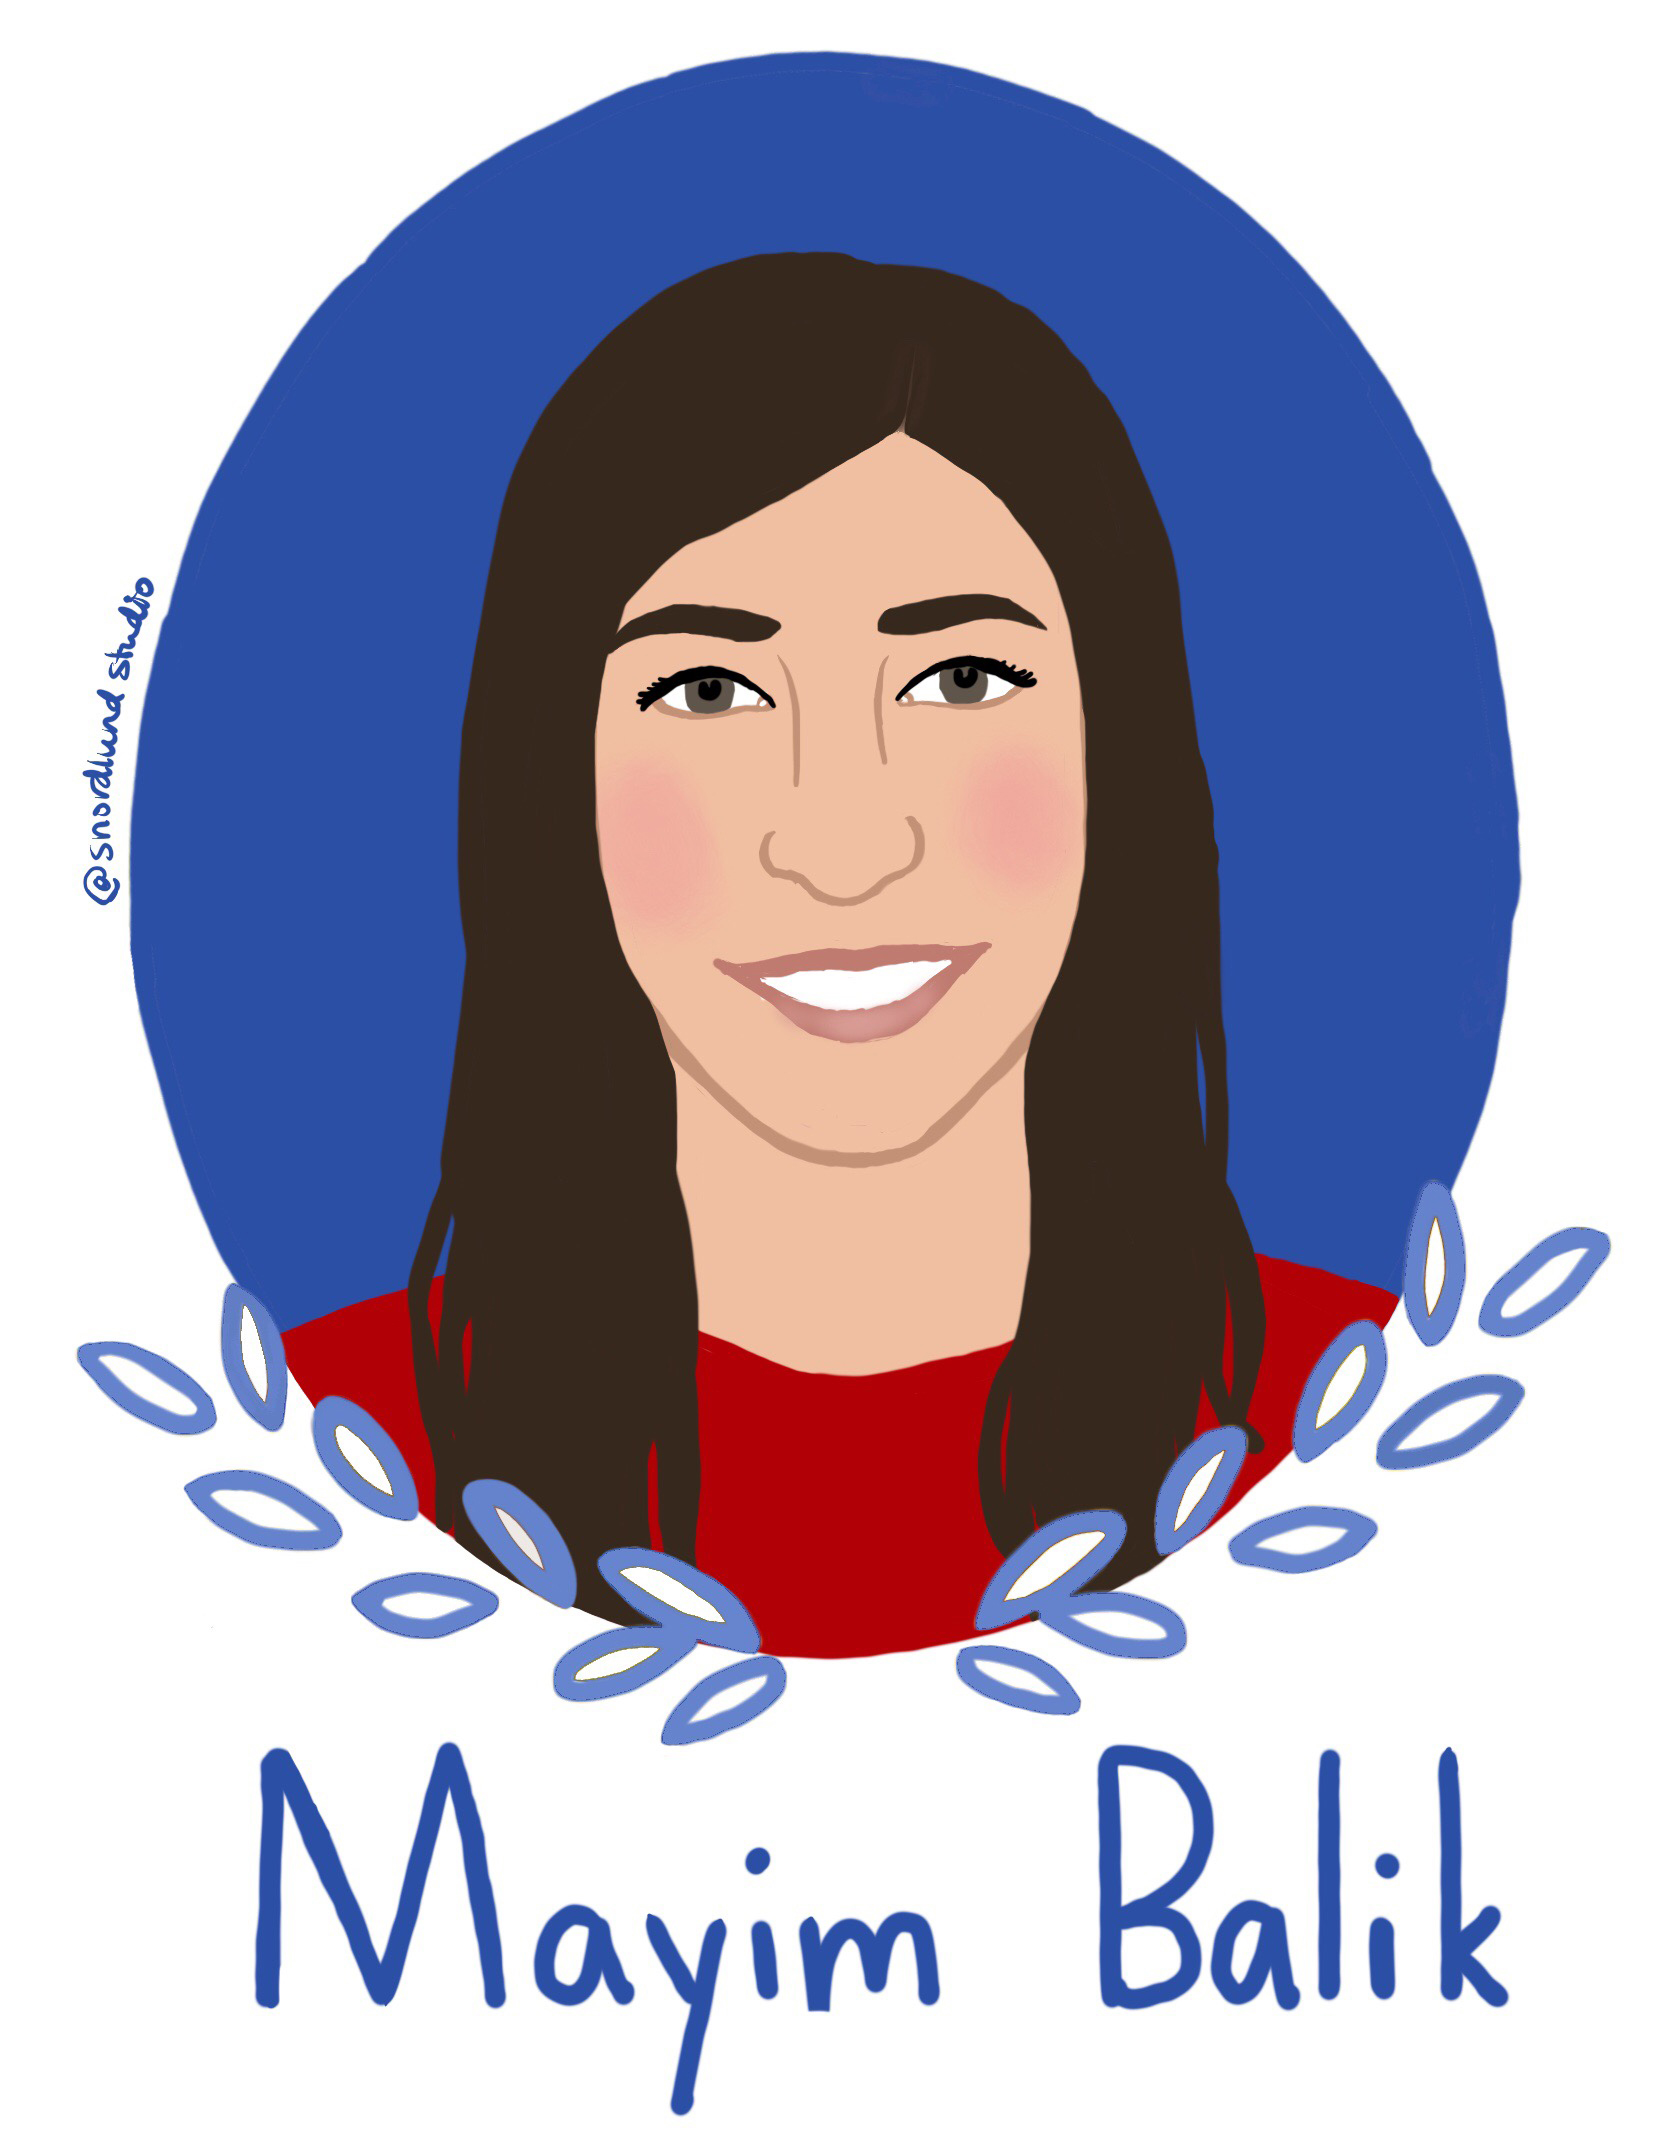 13. Mayim Bialik - Mayim Bialik is an actress and neuroscientist. She's also co-written two books and written one solo.